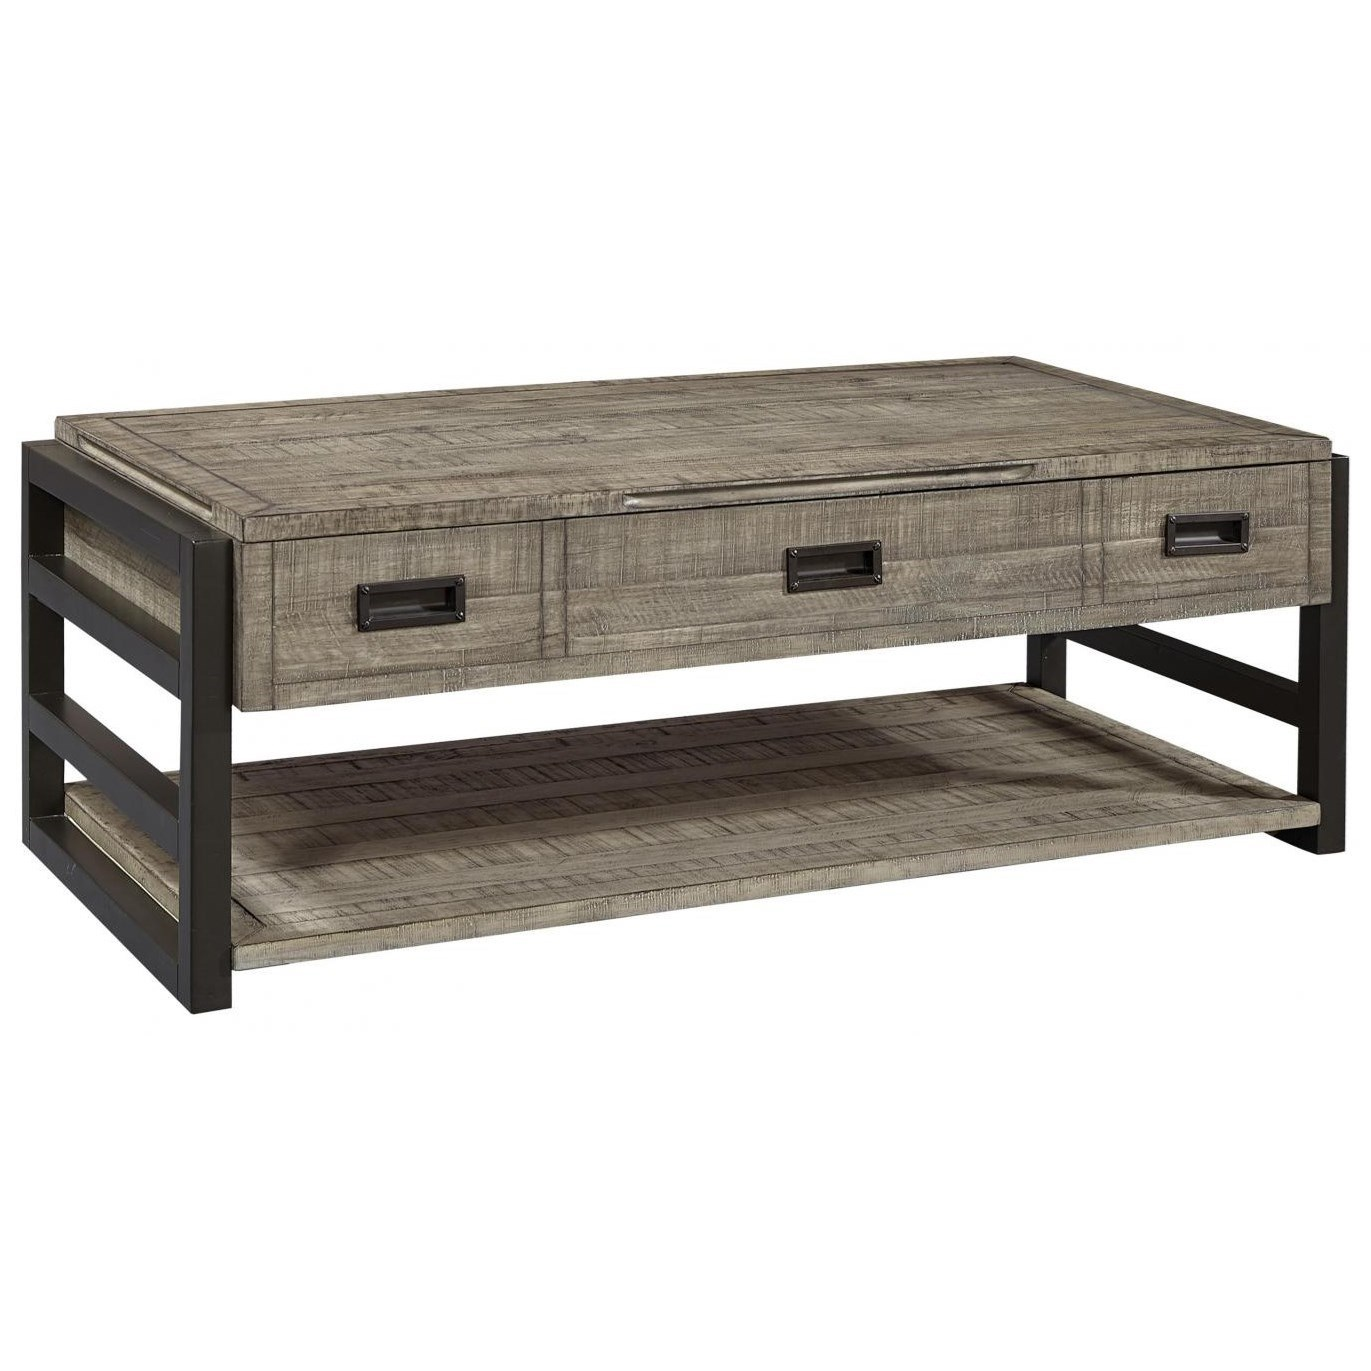 Grayson Lift Top Cocktail Table by Aspenhome at Stoney Creek Furniture